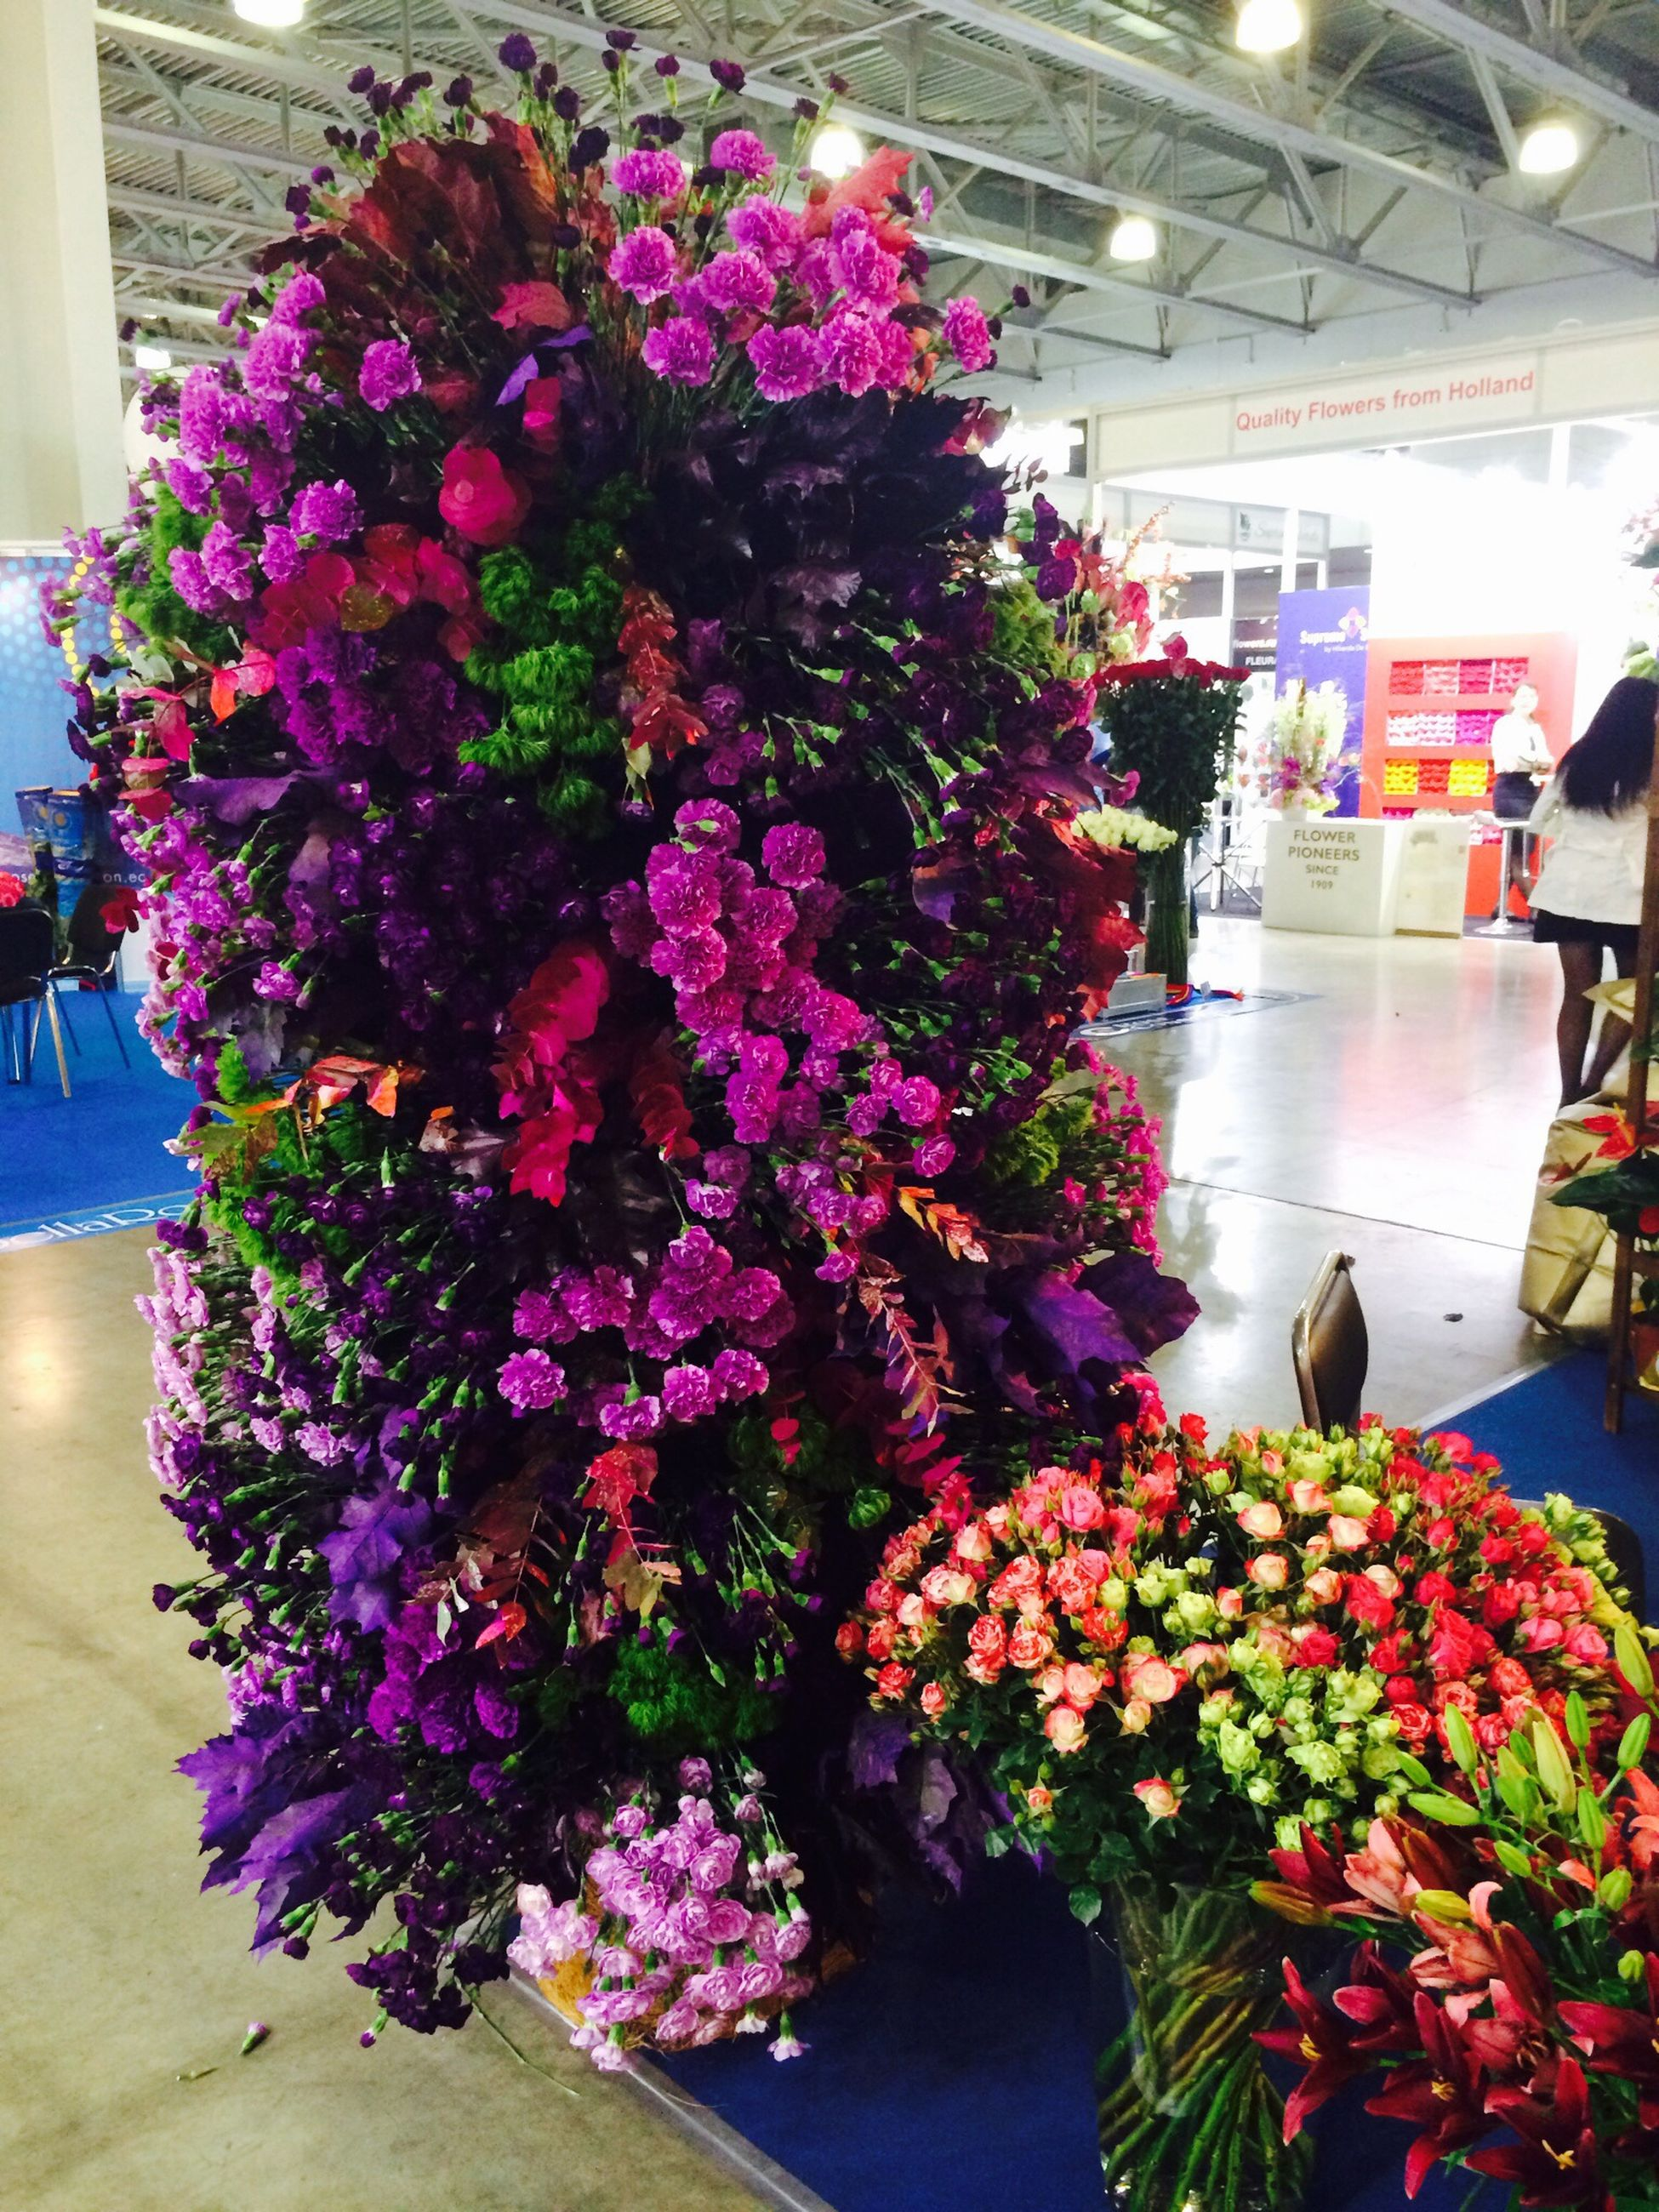 flower, freshness, fragility, potted plant, plant, petal, pink color, indoors, multi colored, growth, bouquet, beauty in nature, variation, nature, blooming, decoration, flower head, high angle view, flower pot, purple